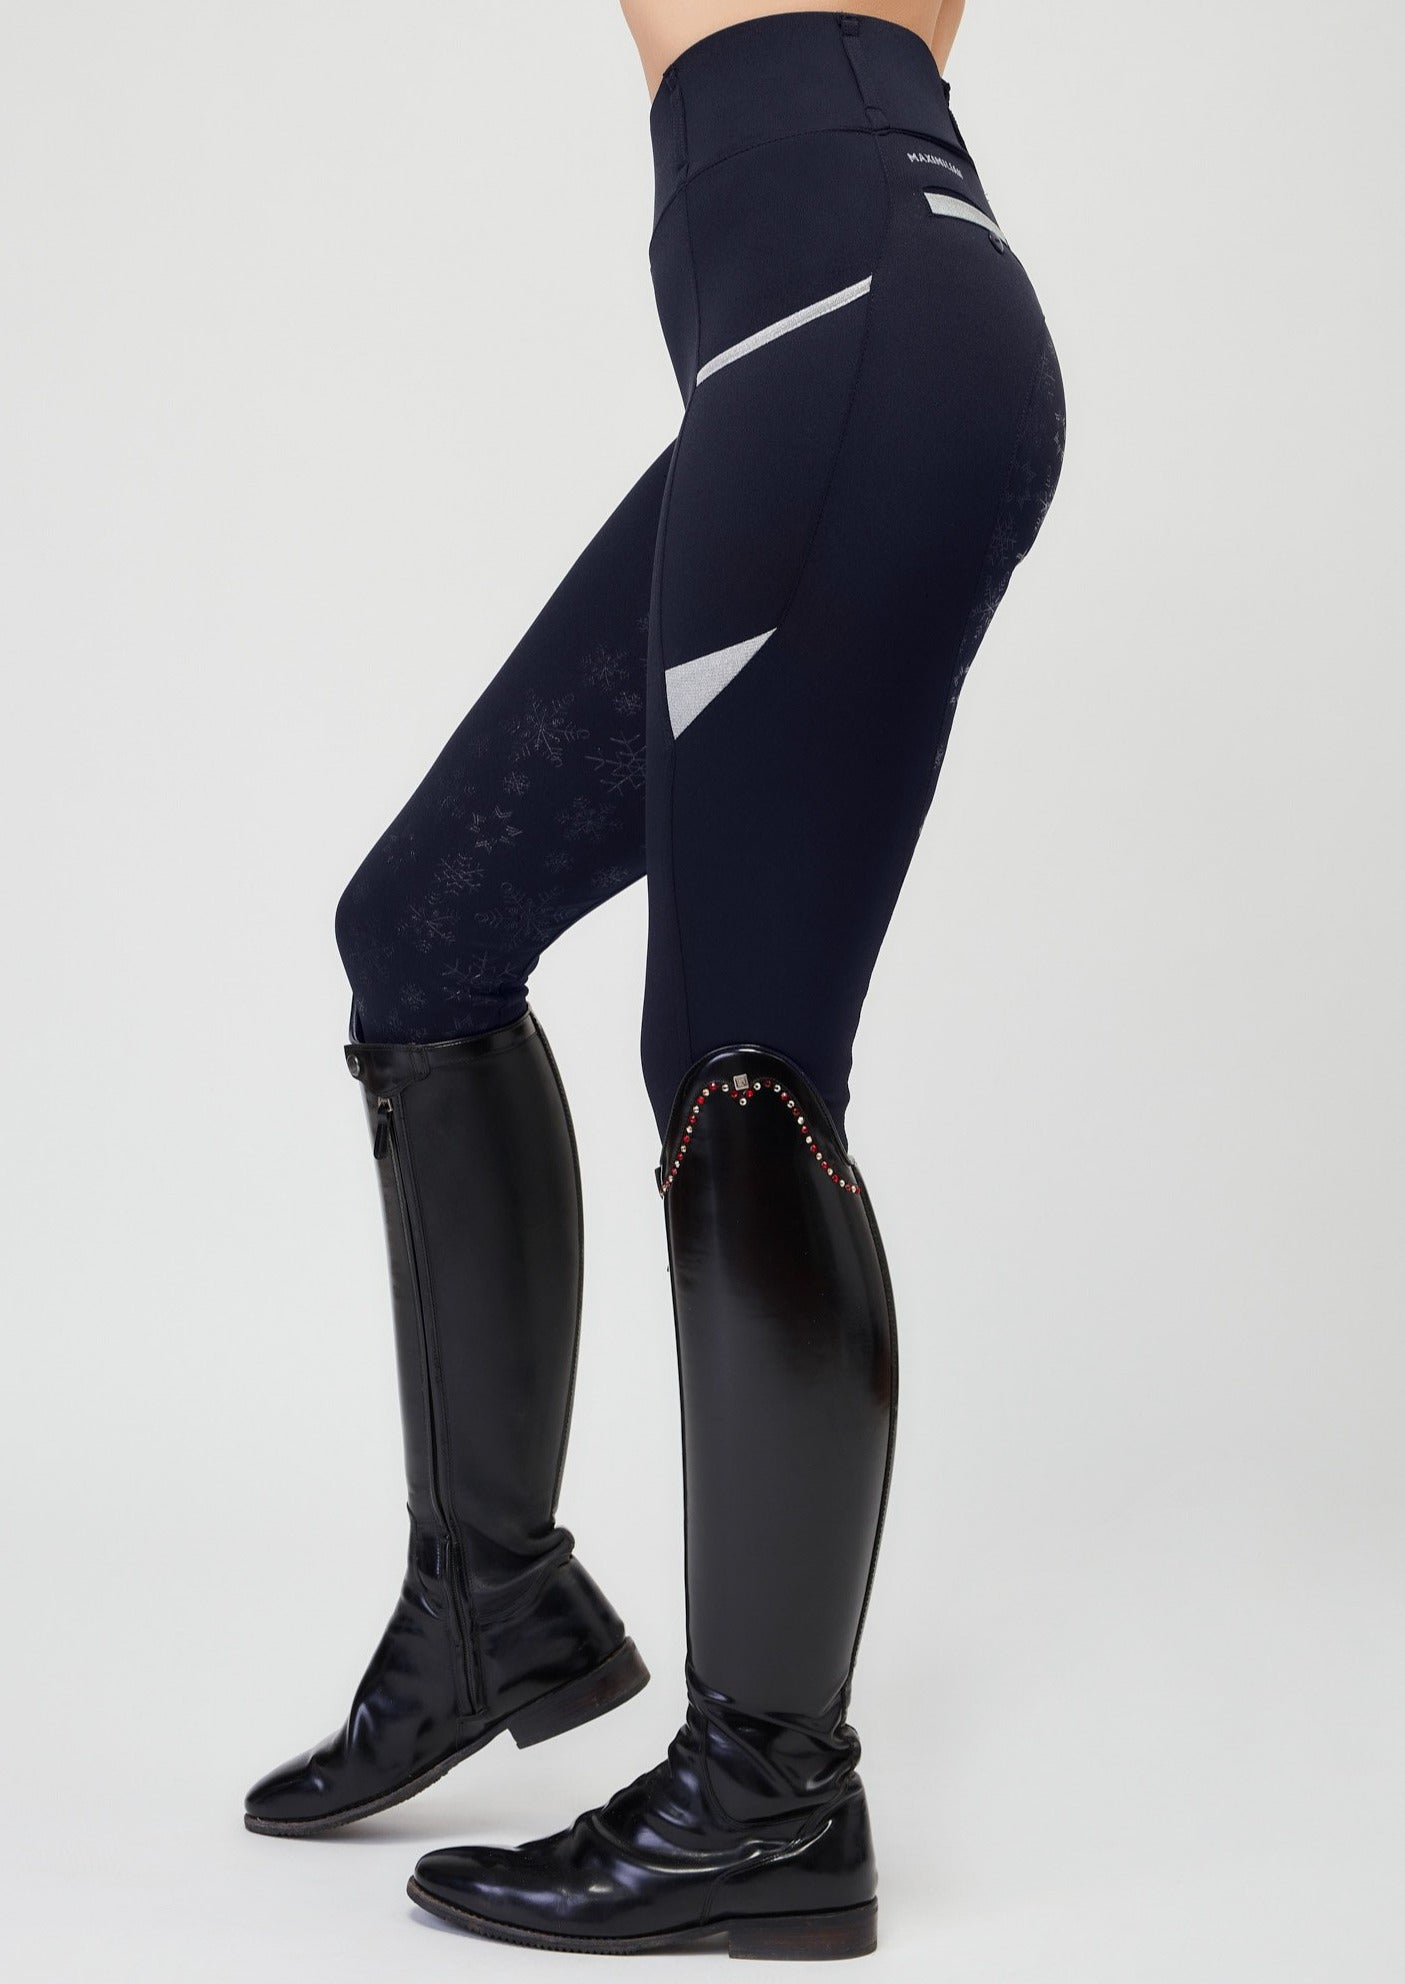 """Winter"" Limited Edition Leggings - Navy & Silver"